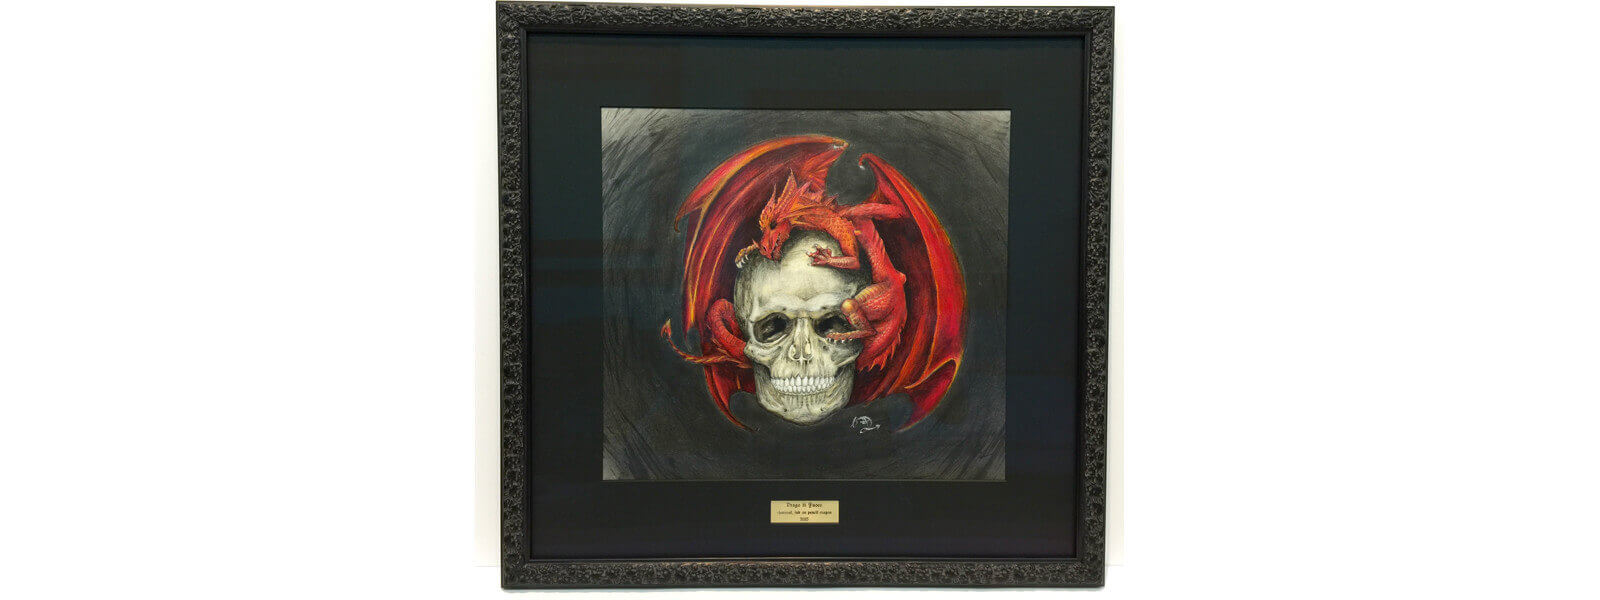 HS-skull-dragon-art-framed